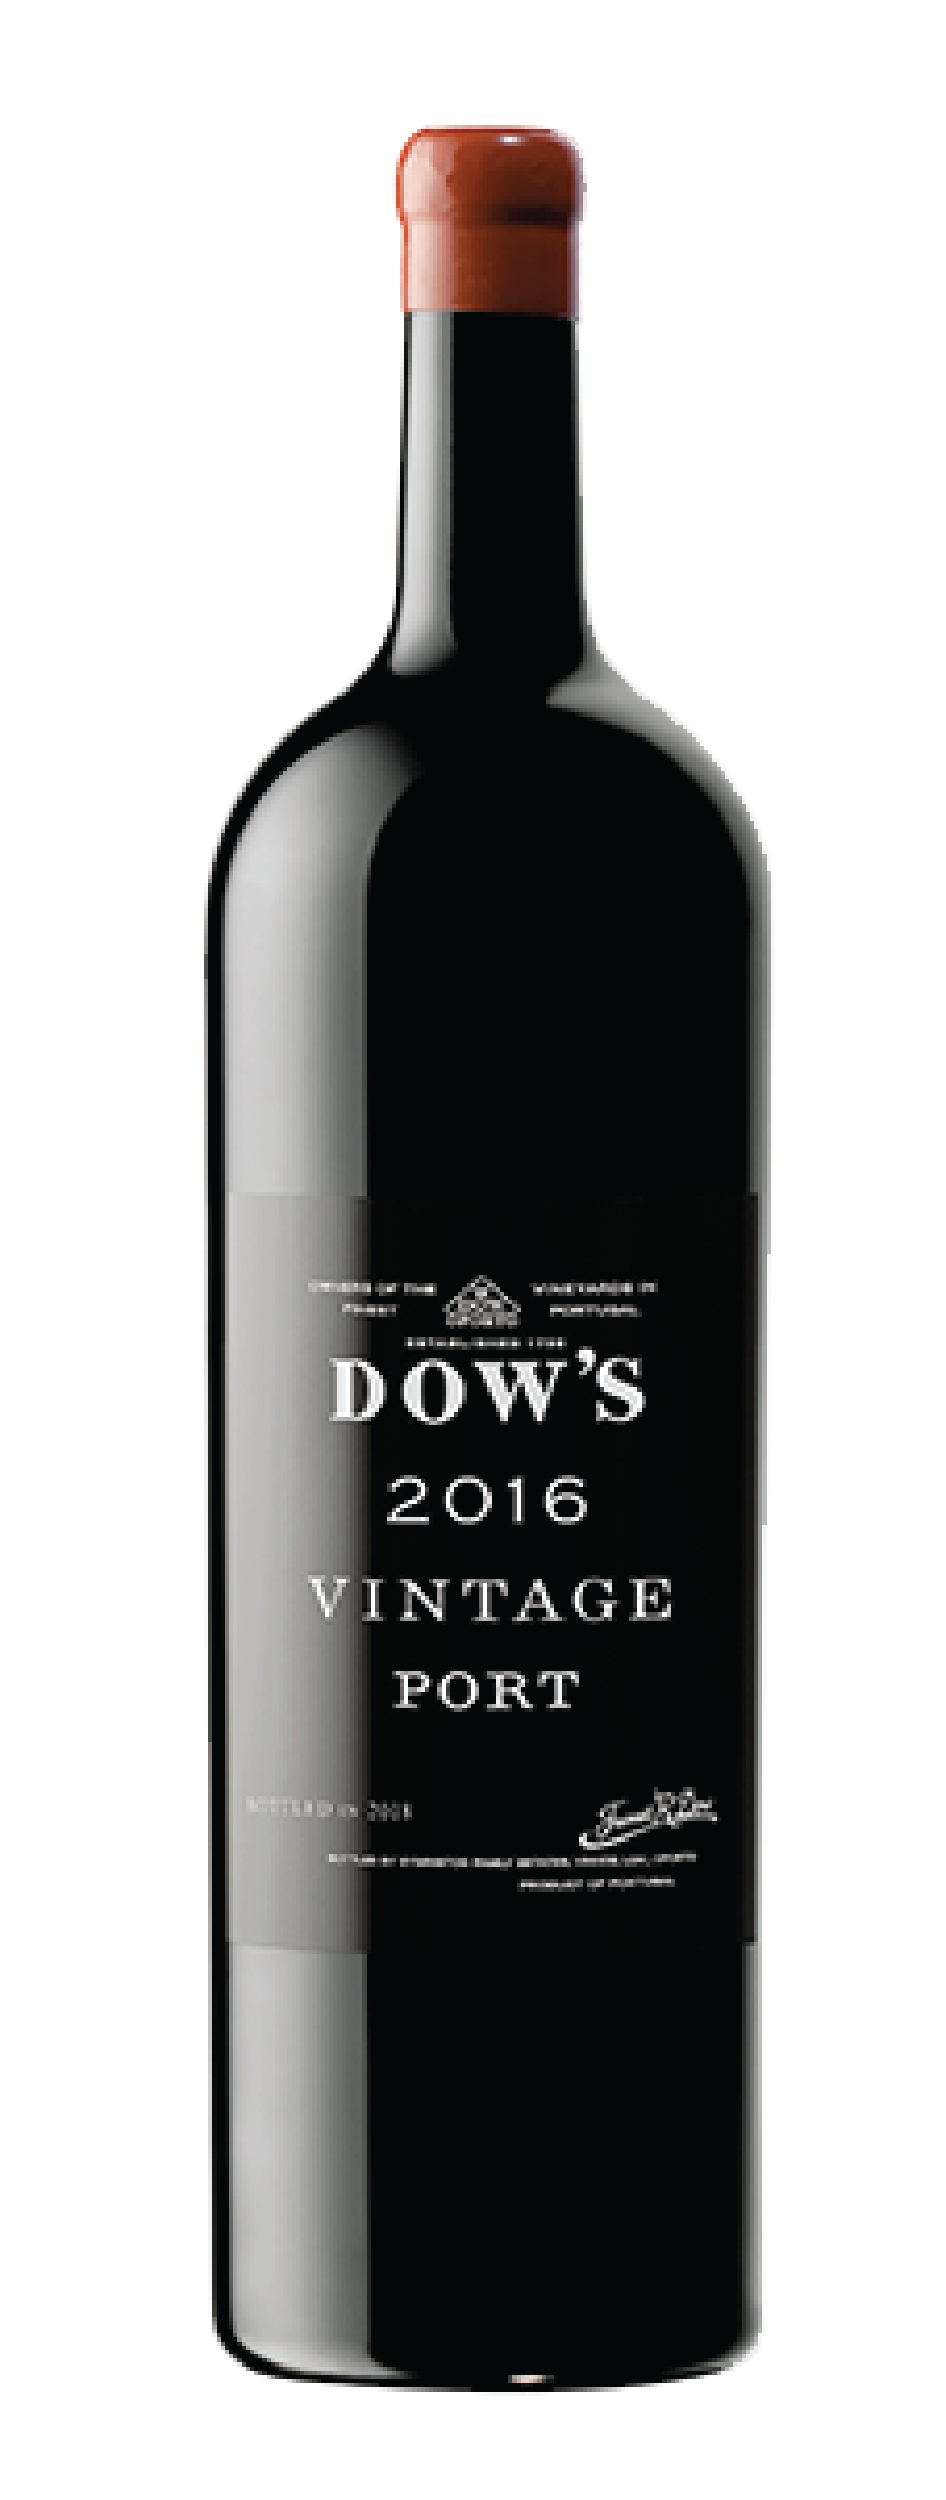 Product Image for DOW'S VINTAGE PORT 2016 - DOUBLE MAGNUM